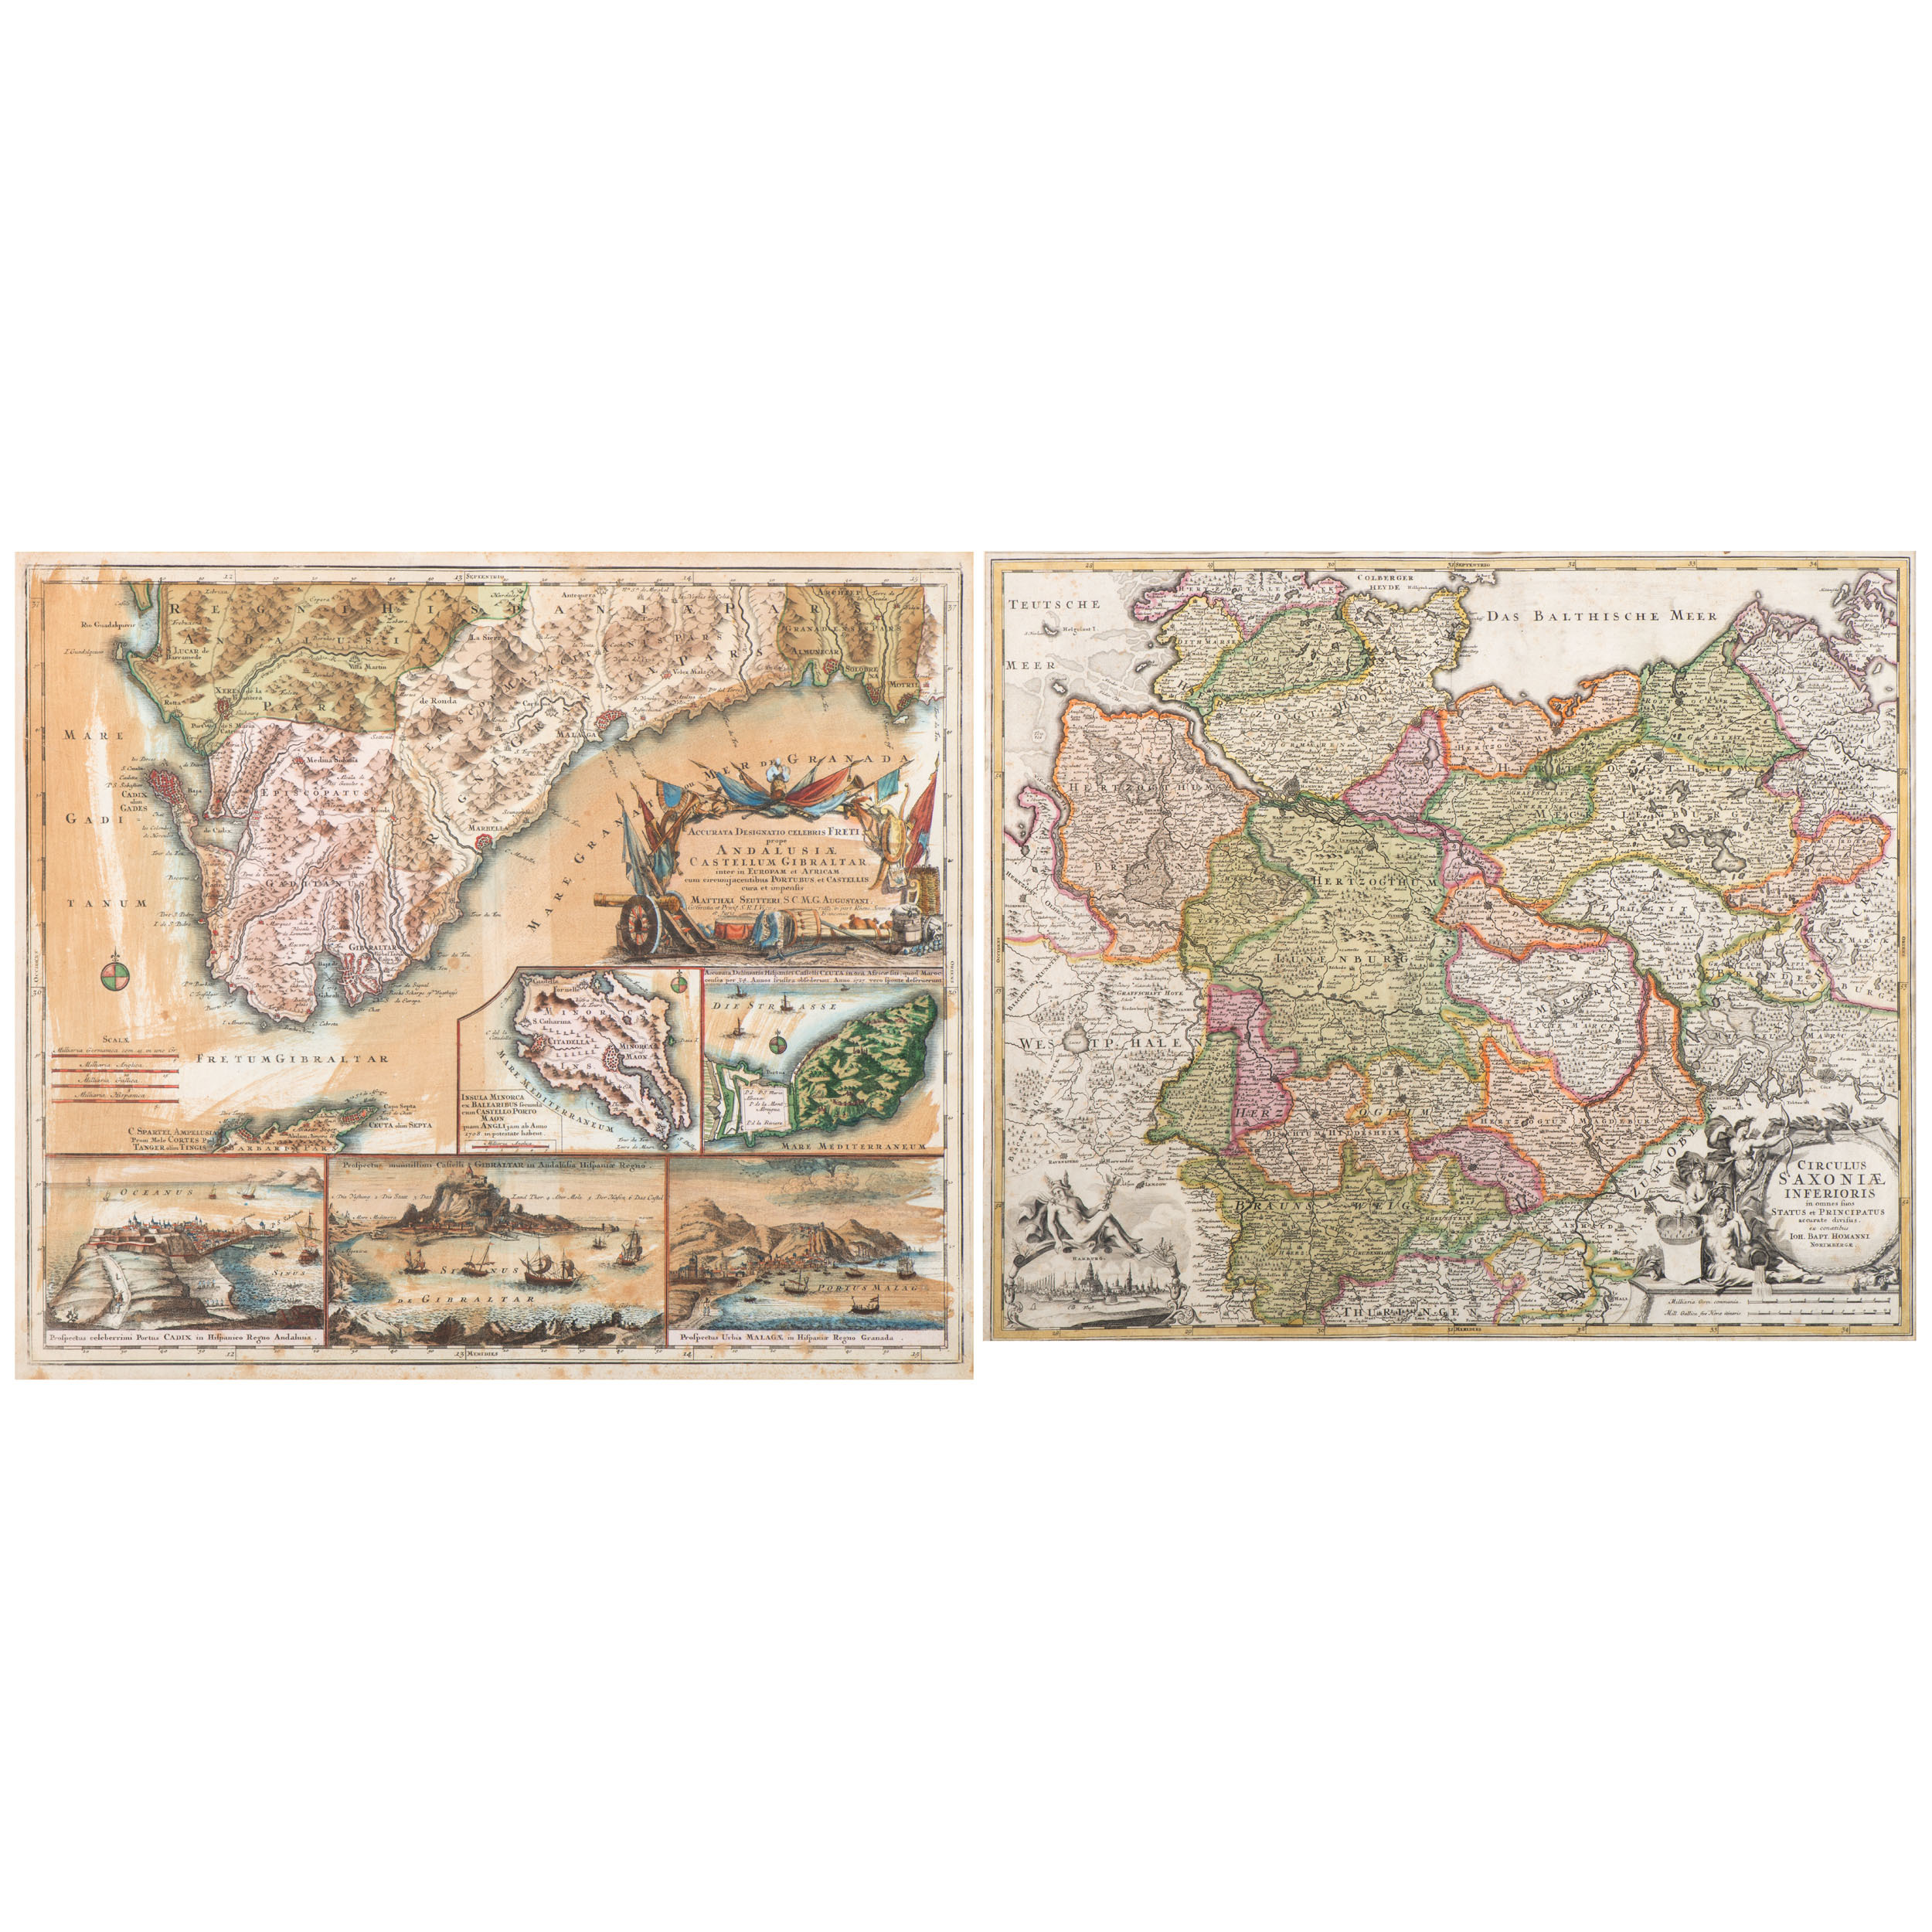 Map Of Germany To Spain.Cartography Europe 18th Century Maps By Matthias Seutter 1678